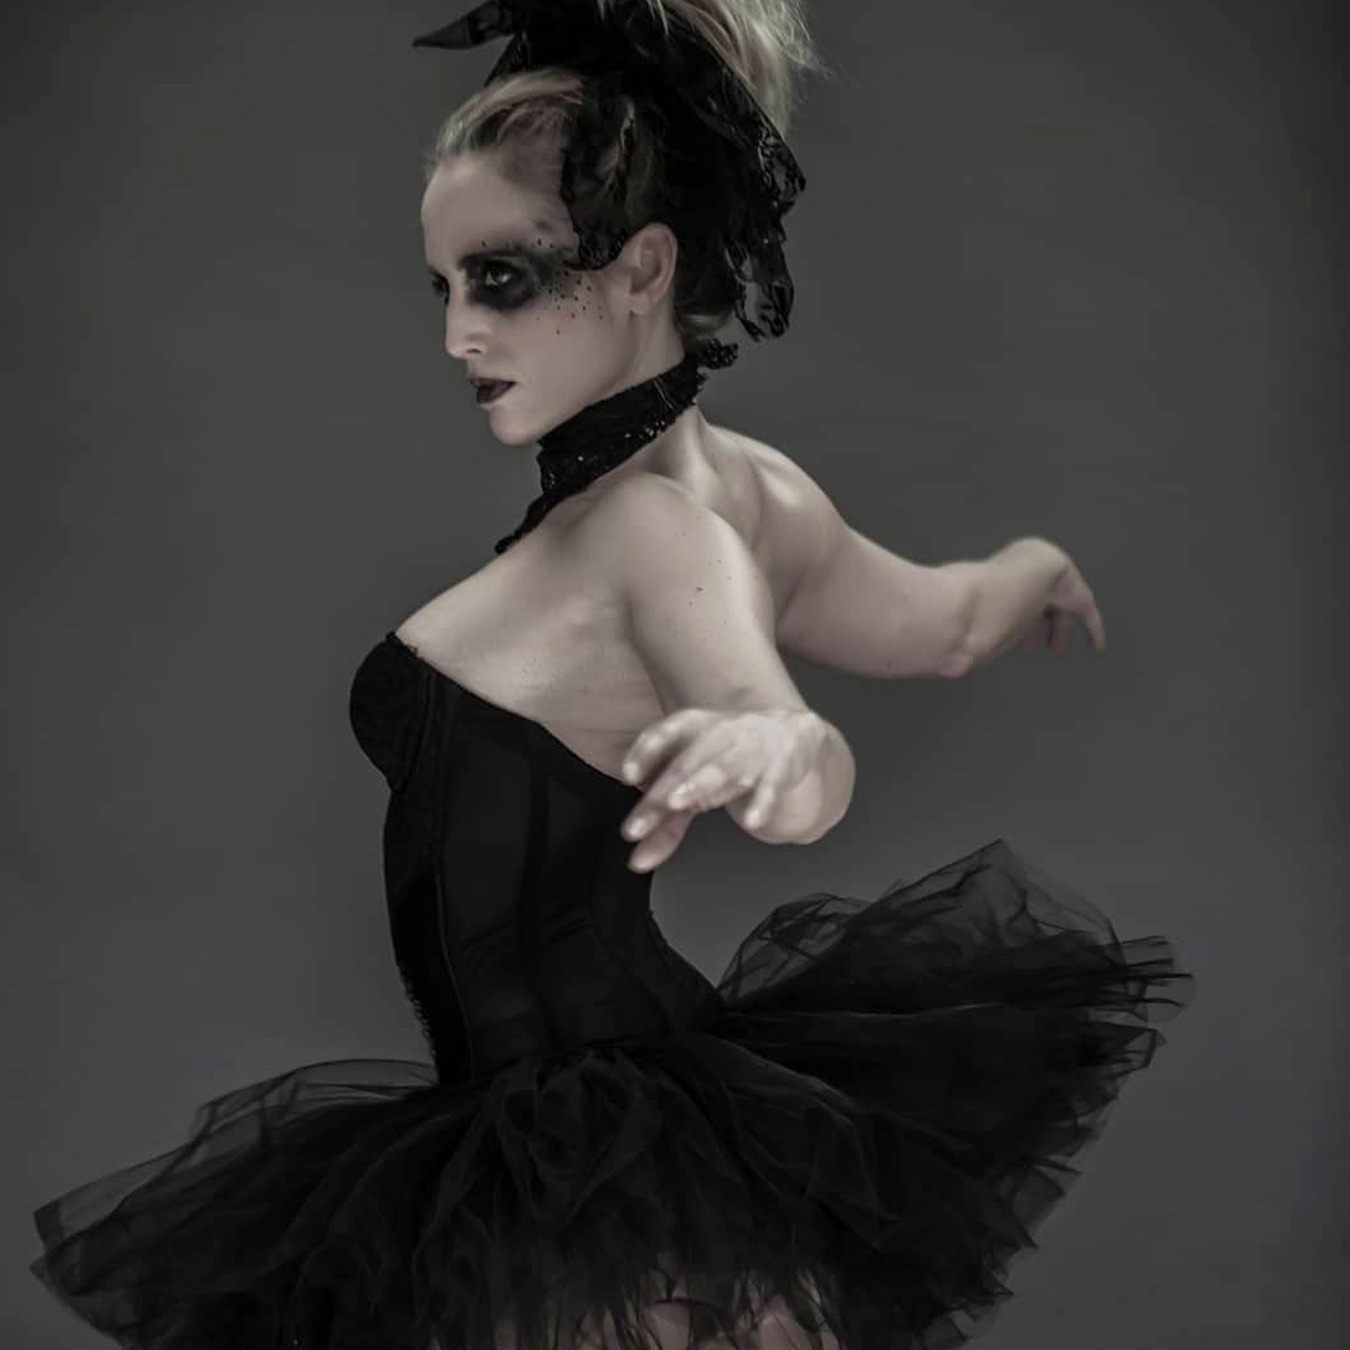 Ballerina with arms spread dancing back to the camera, wearing a black tutu skirt